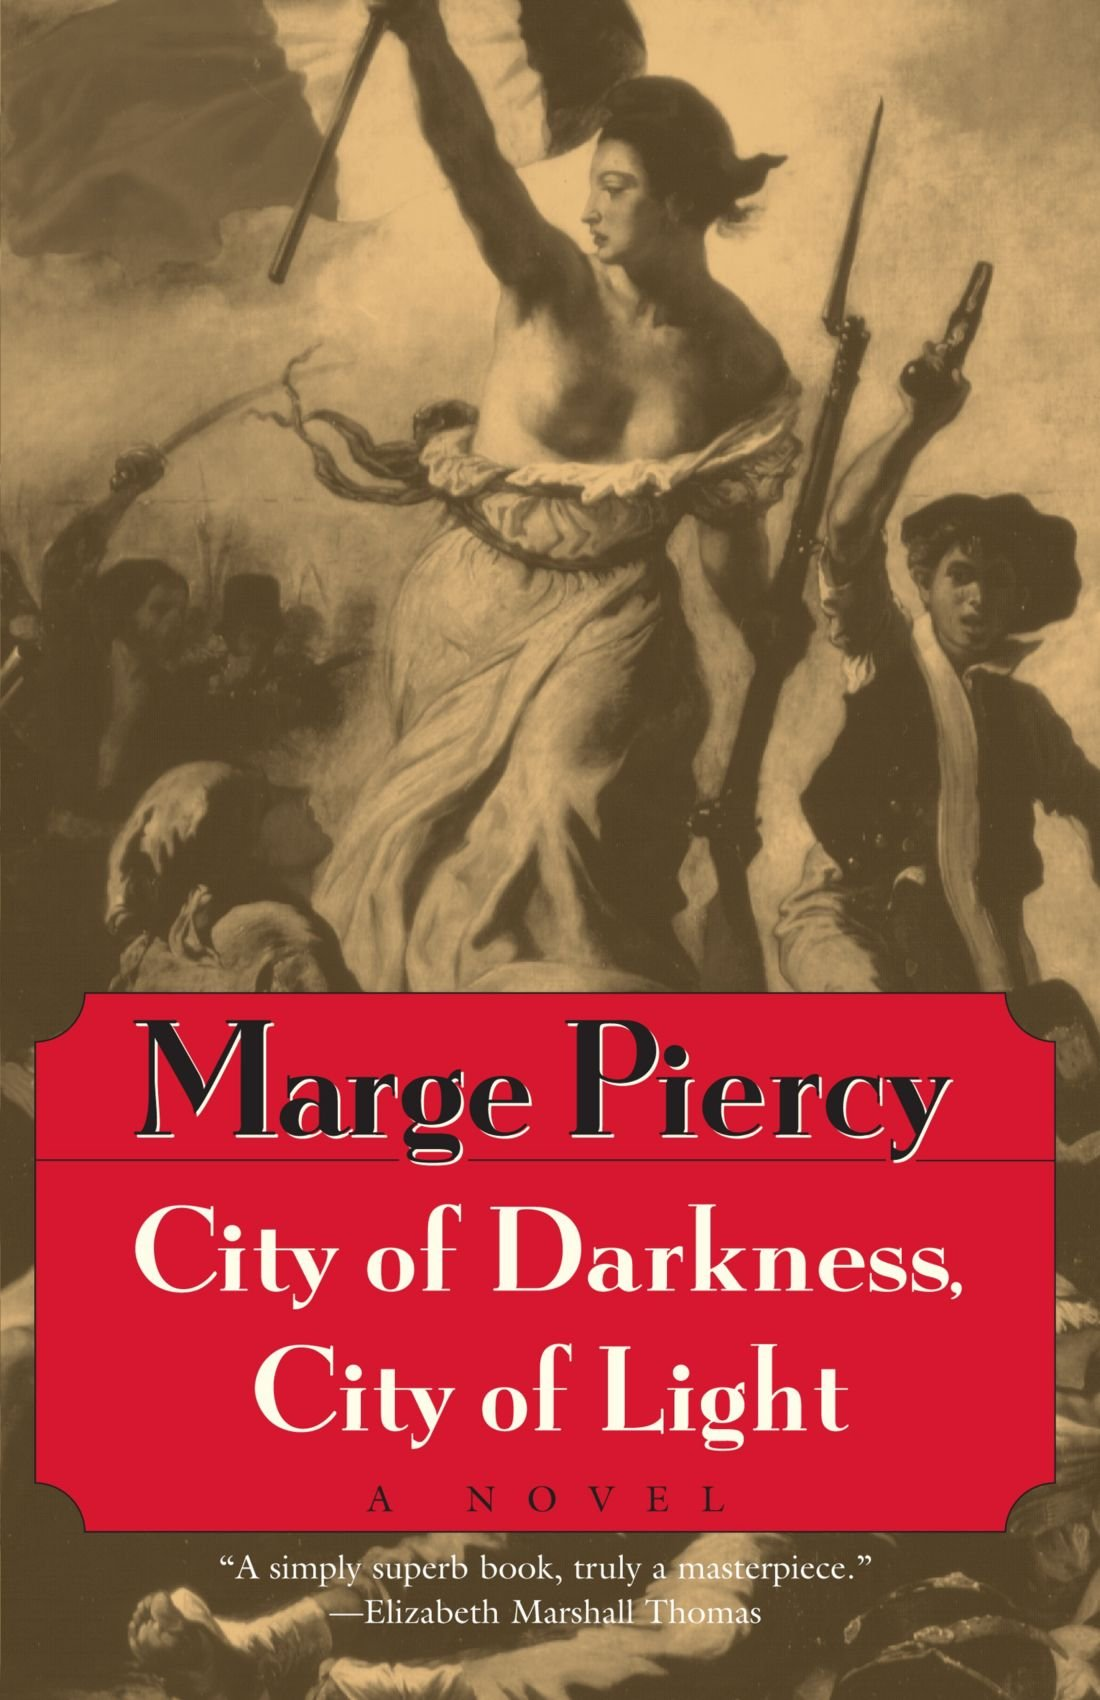 City of Darkness, City of Light: Marge Piercy: 9780449912751: Amazon ...